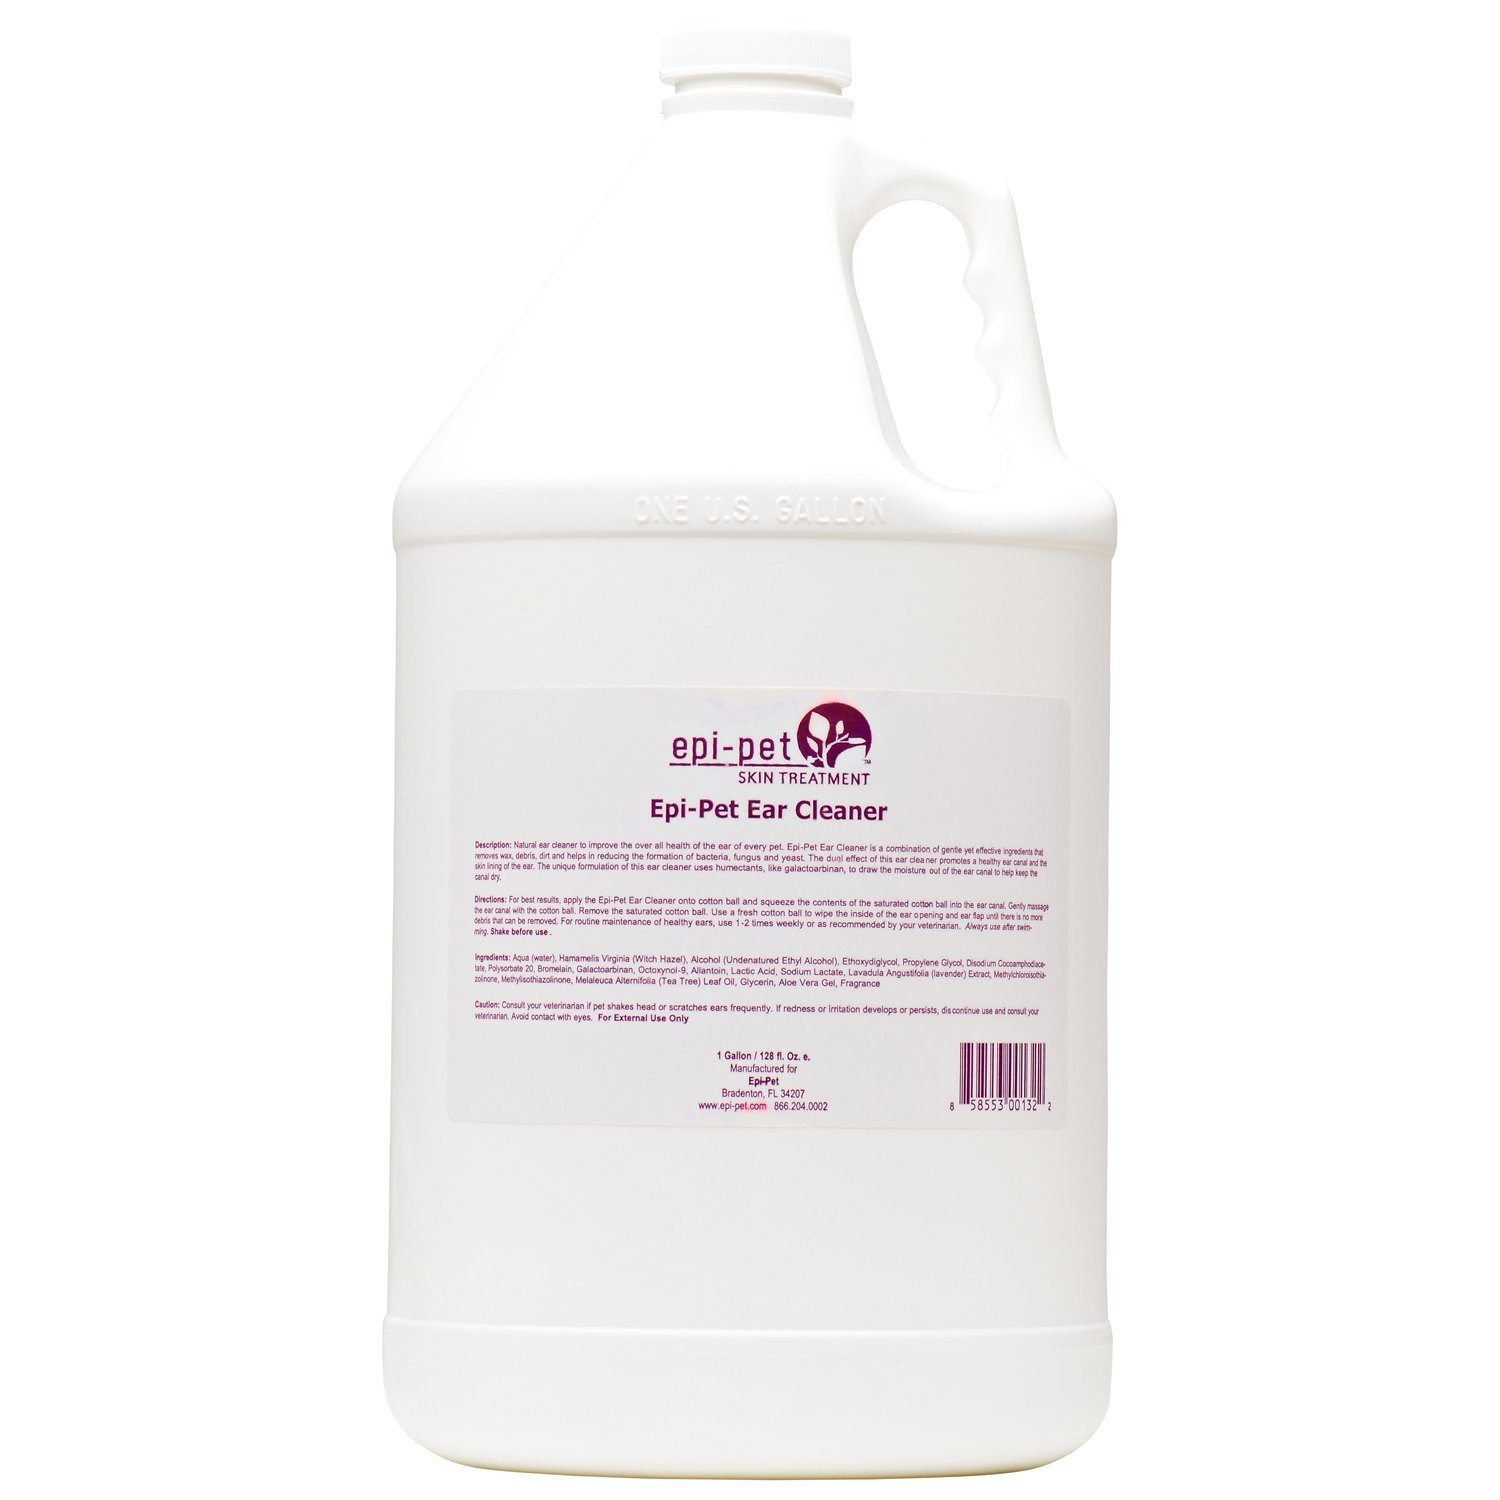 Epi-Pet Ear Cleaner for Pets, 1-Gallon